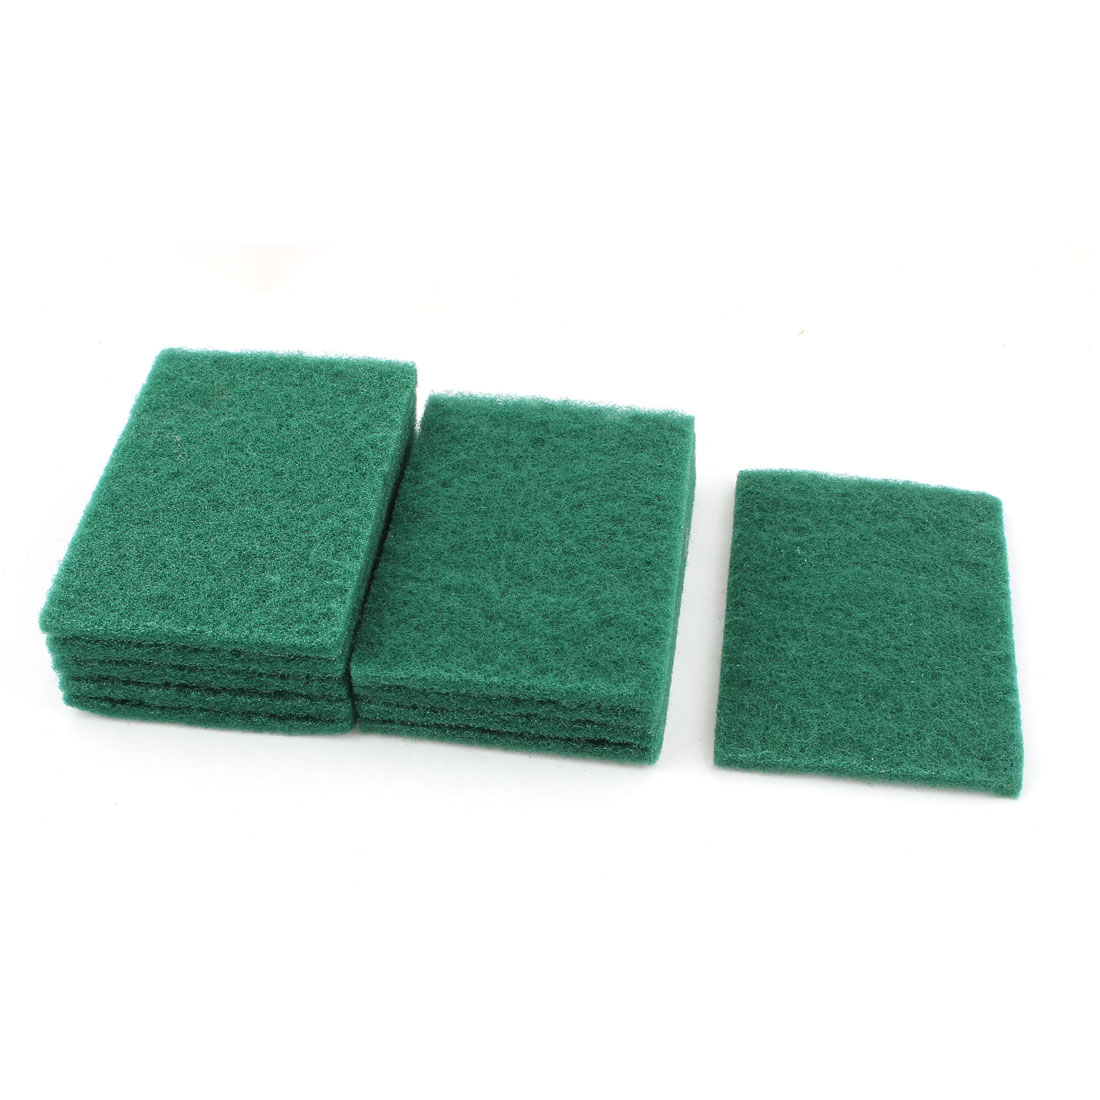 Home Kitchen Bowl Dish Wash Clean Scrub Sponge Cleaning Pads Green 10pcs